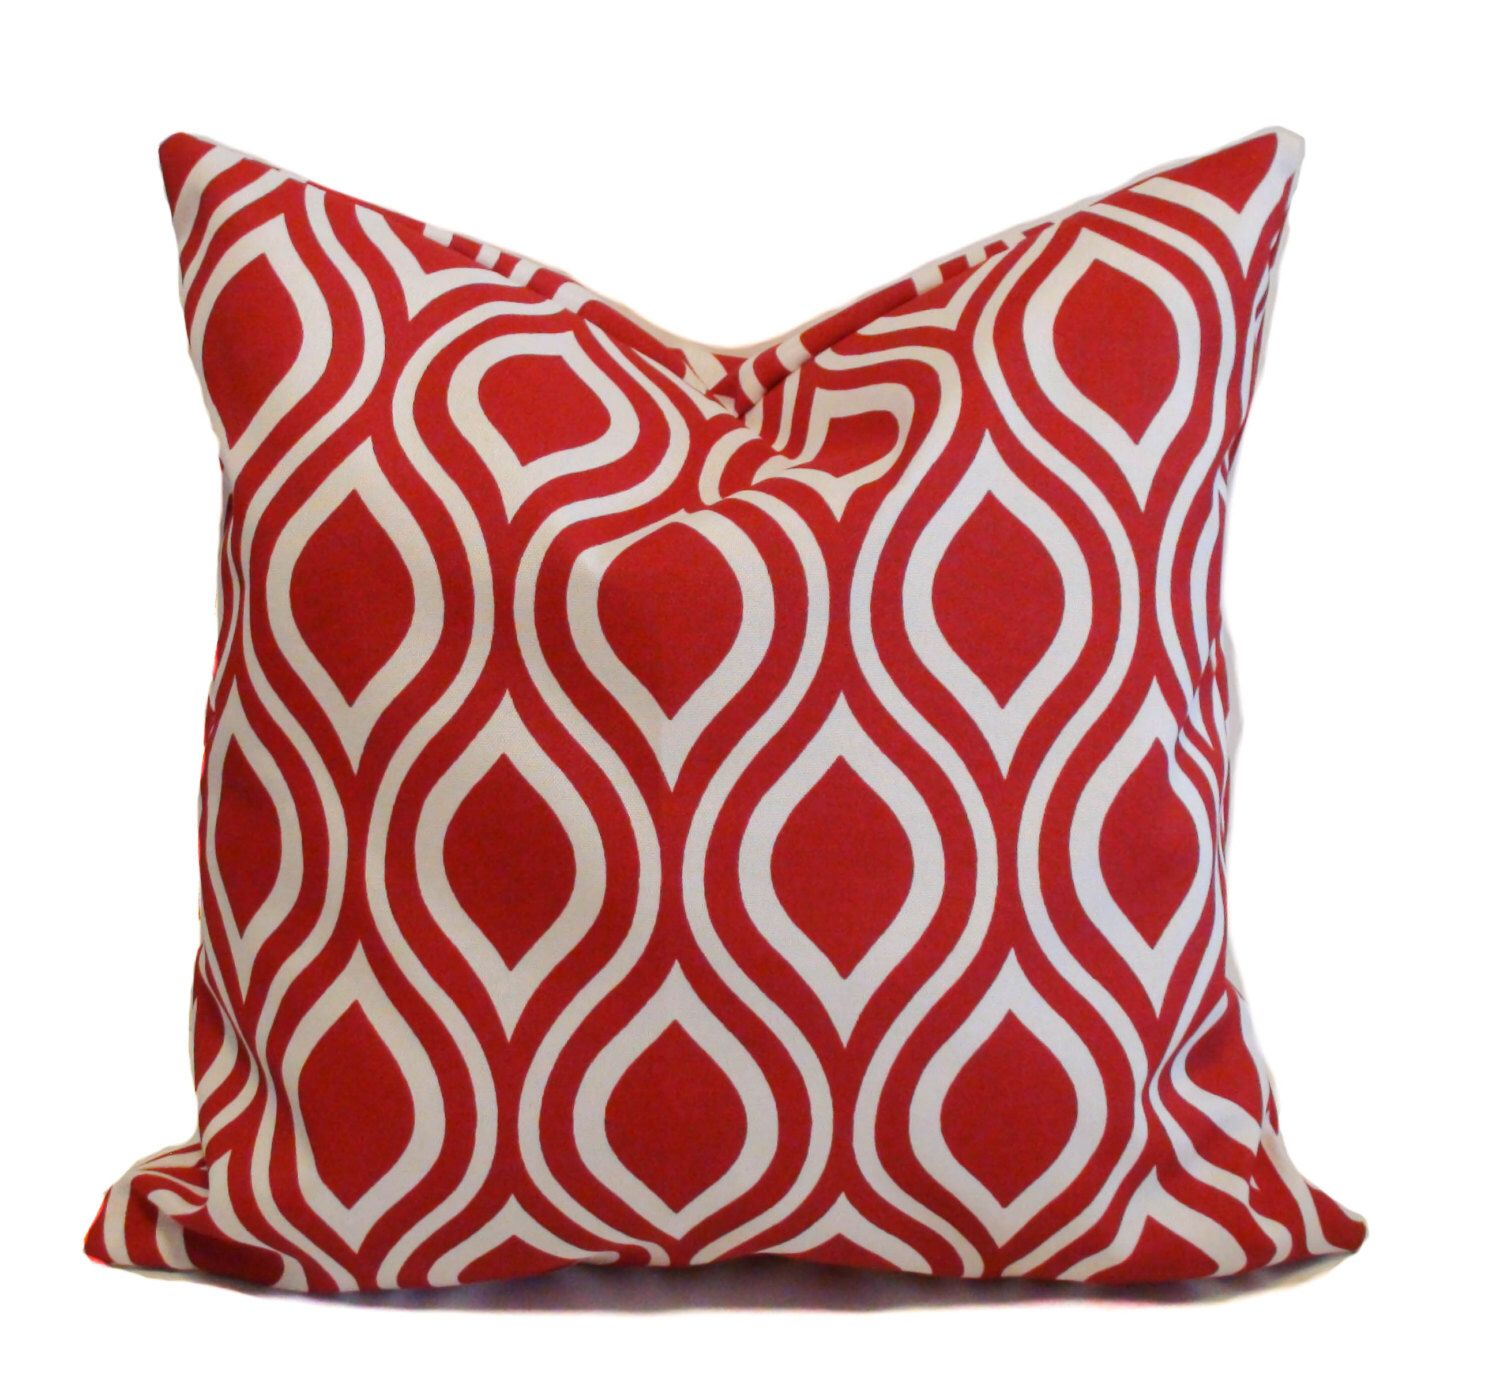 large on pottery christmas barn clearance pillow lowes only sunbrella target outdoor shop burnt majestic ands canada cushions ikea red market world ideas sale vertical amazon and marvelous throw pillows orange modern stripe